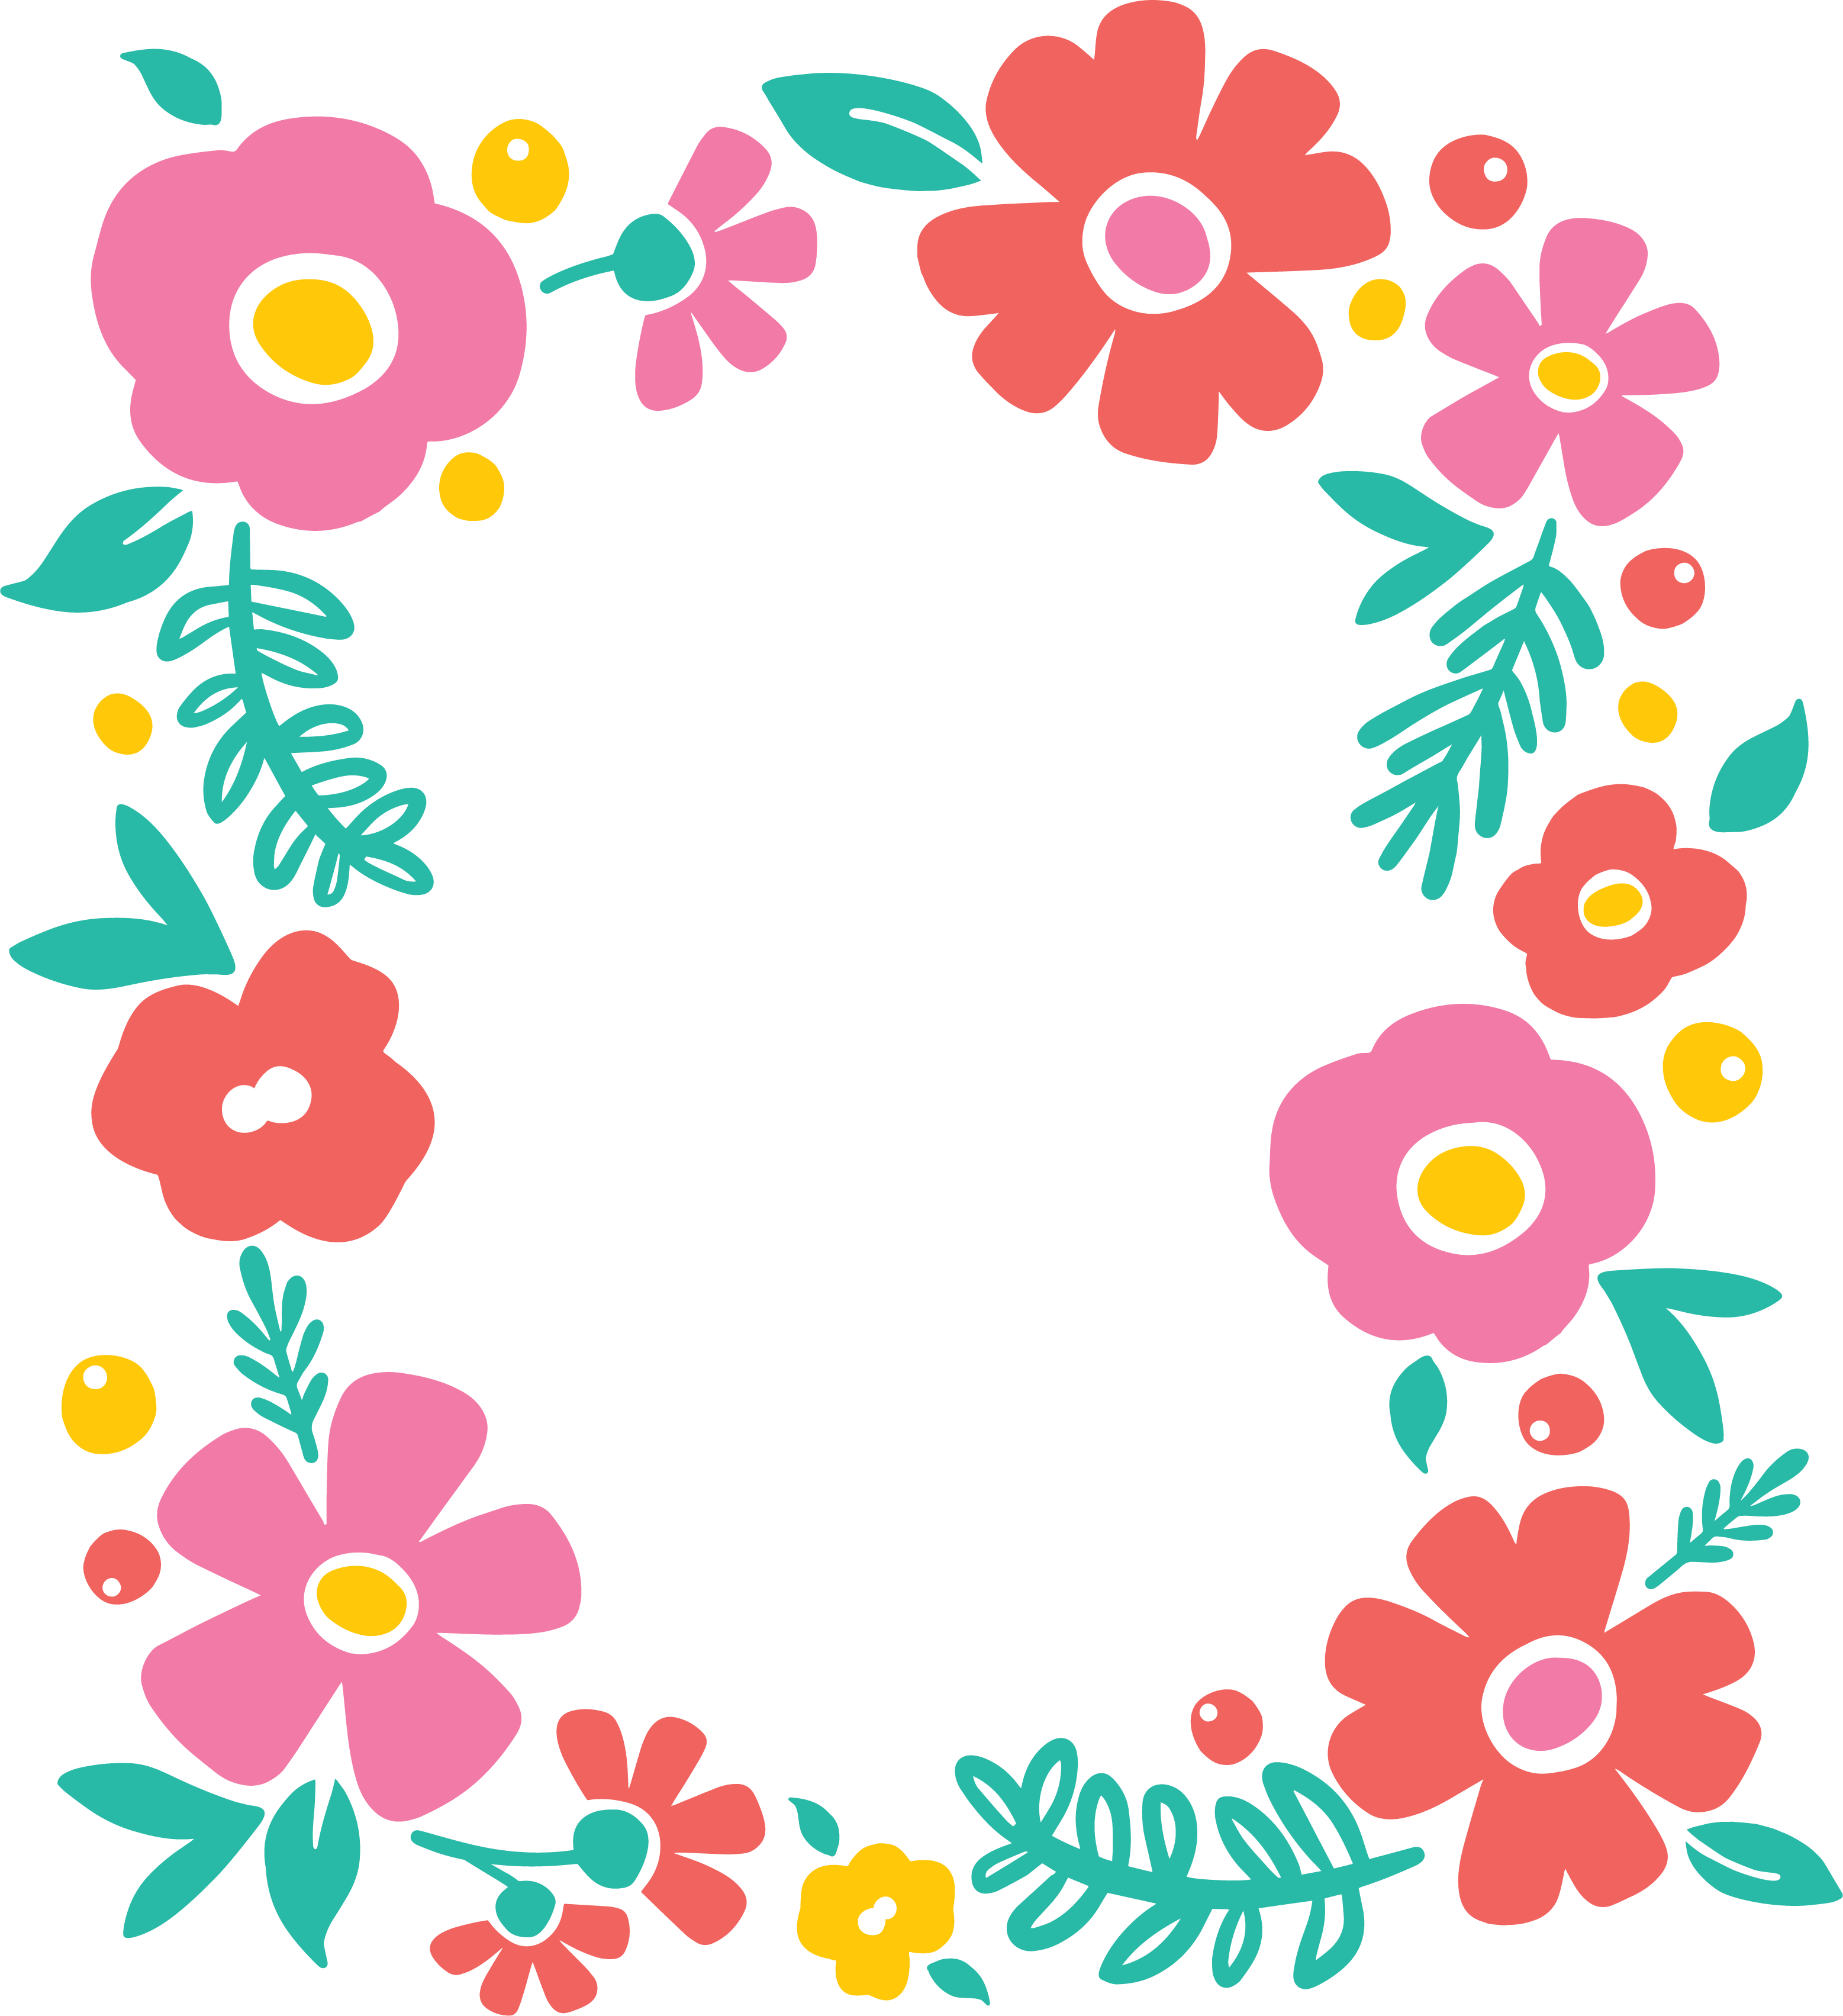 Daisy clipart svg, Daisy svg Transparent FREE for download on